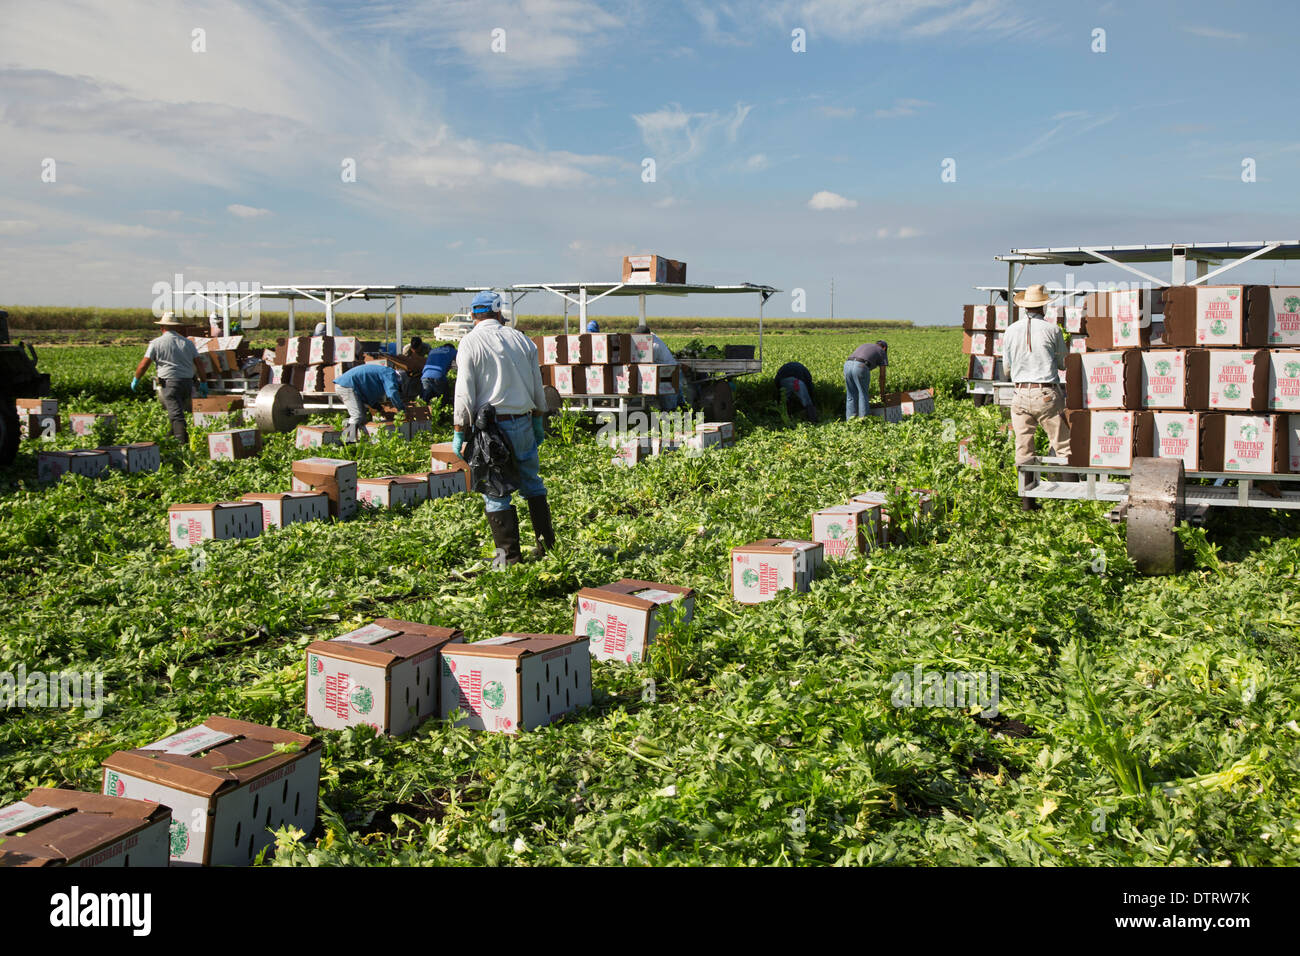 Belle Glade, Florida - Workers harvest celery at Roth Farms. Stock Photo